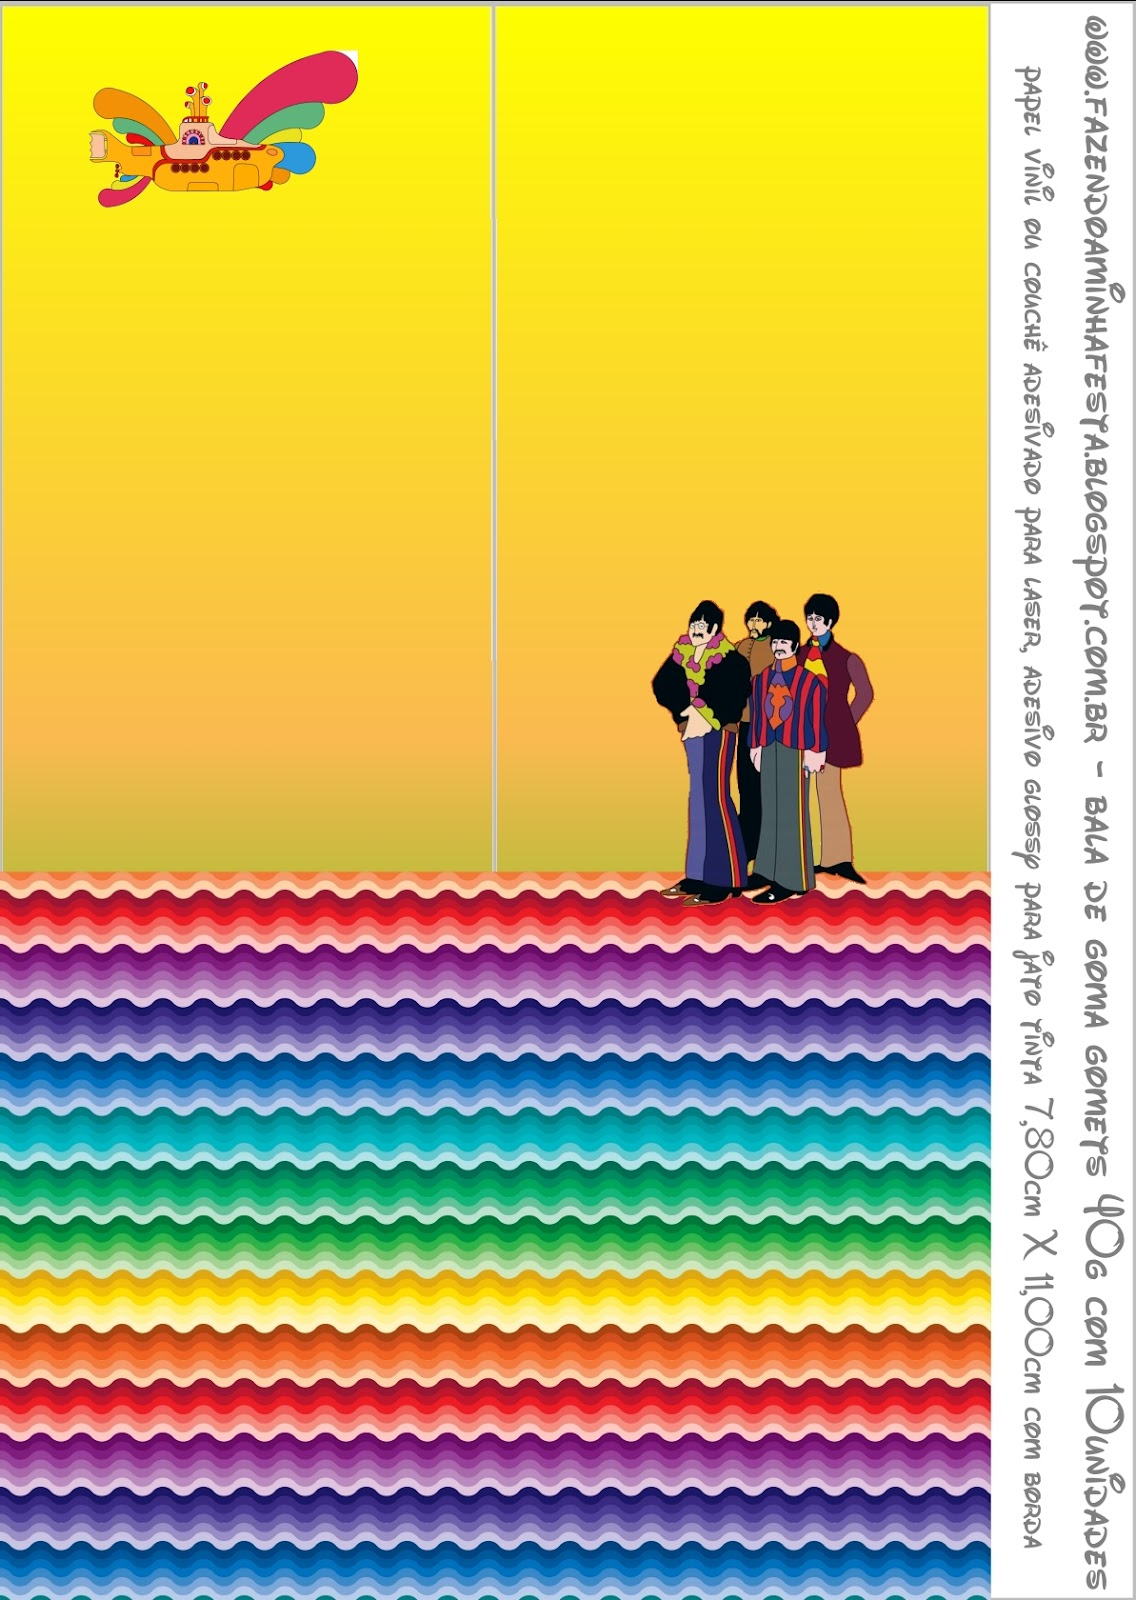 Beatles Yellow Submarine Free Printable Candy Bar Labels